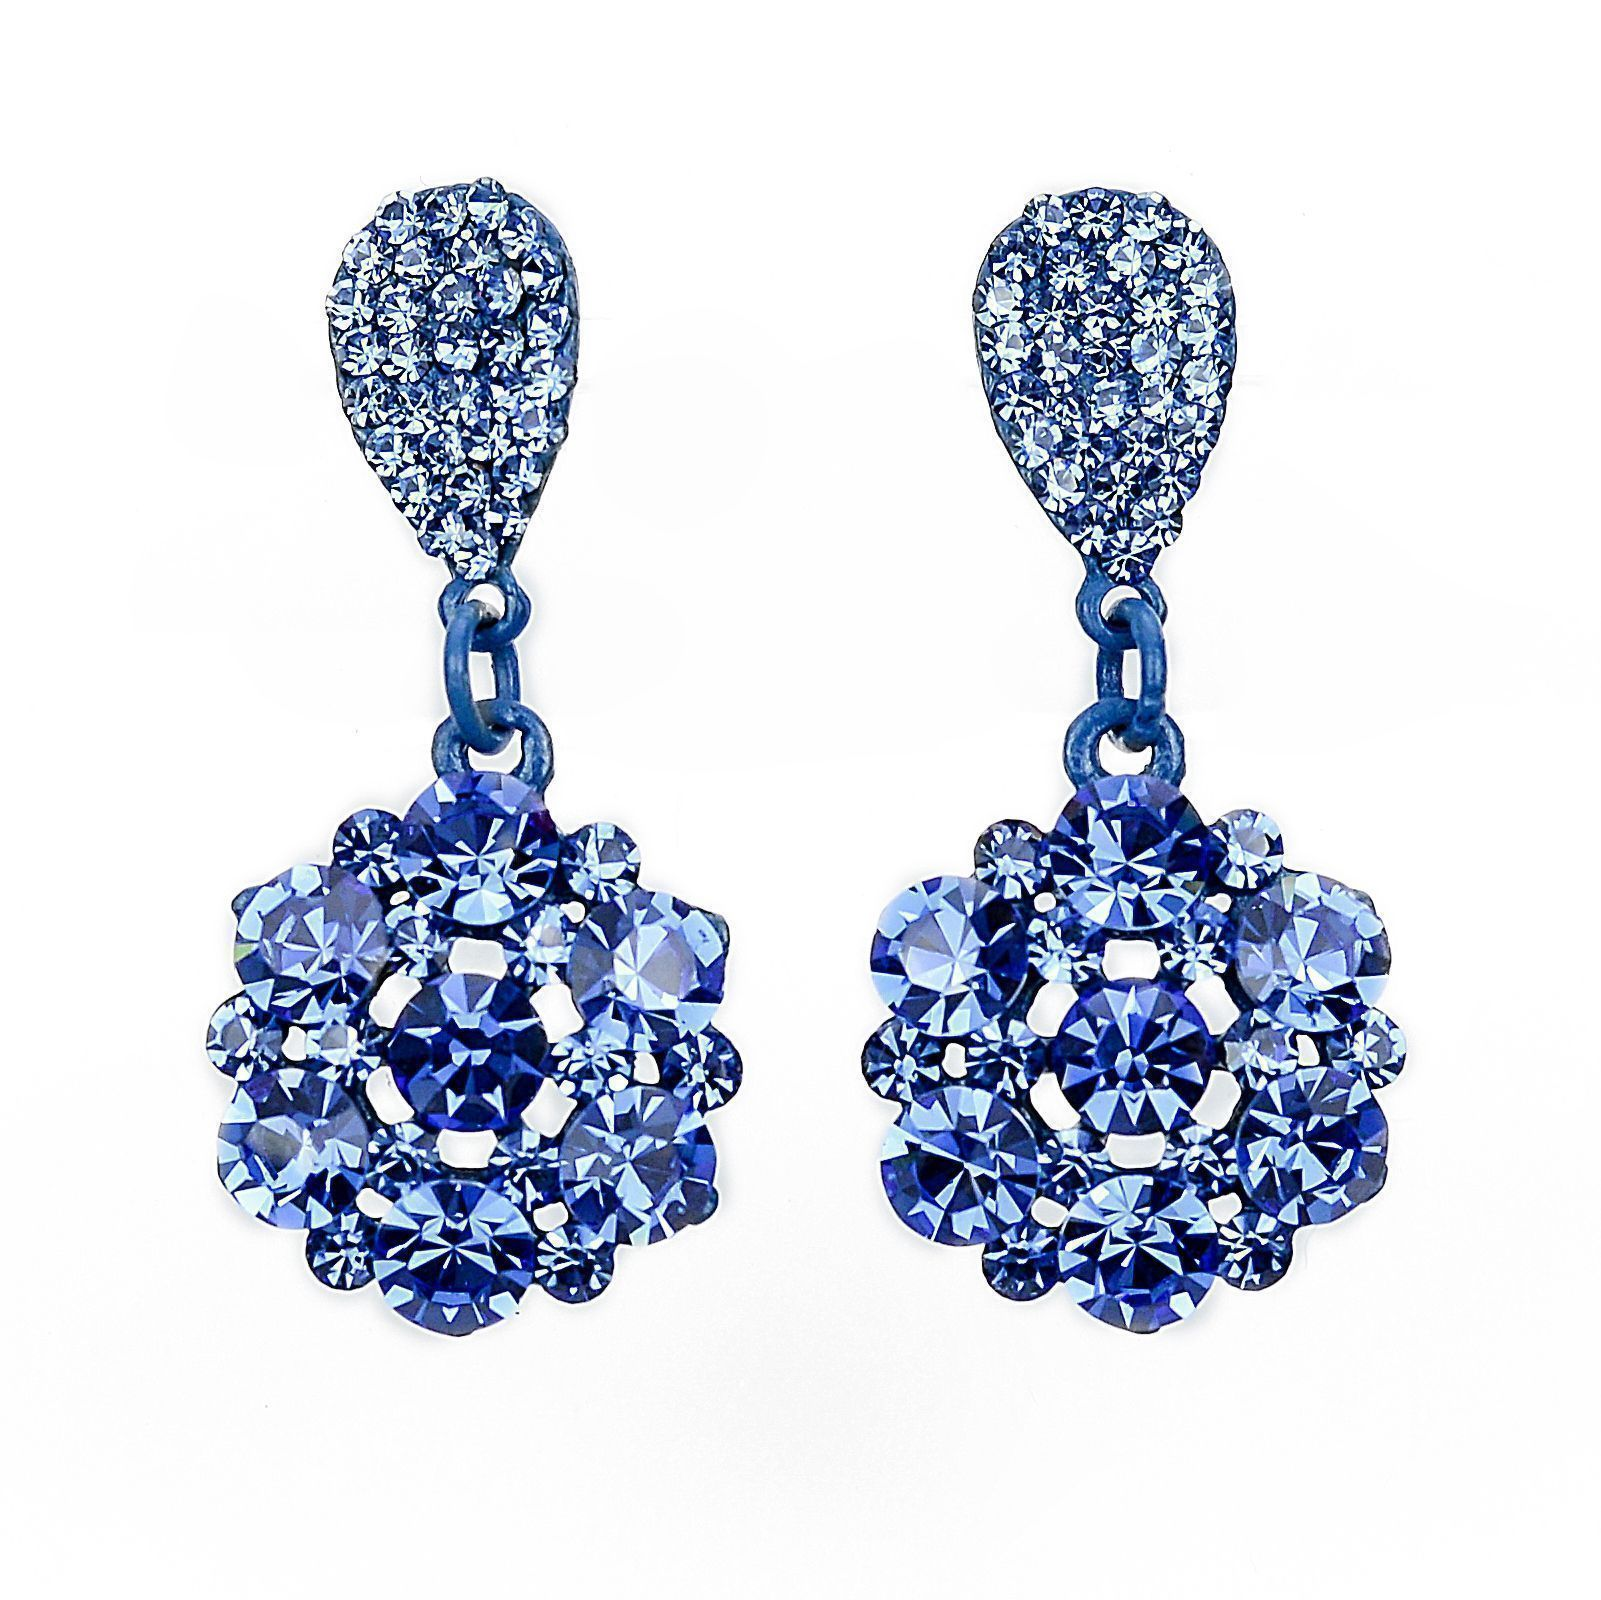 BRINCO REF. 111569 - <strong>Sapphire</strong>